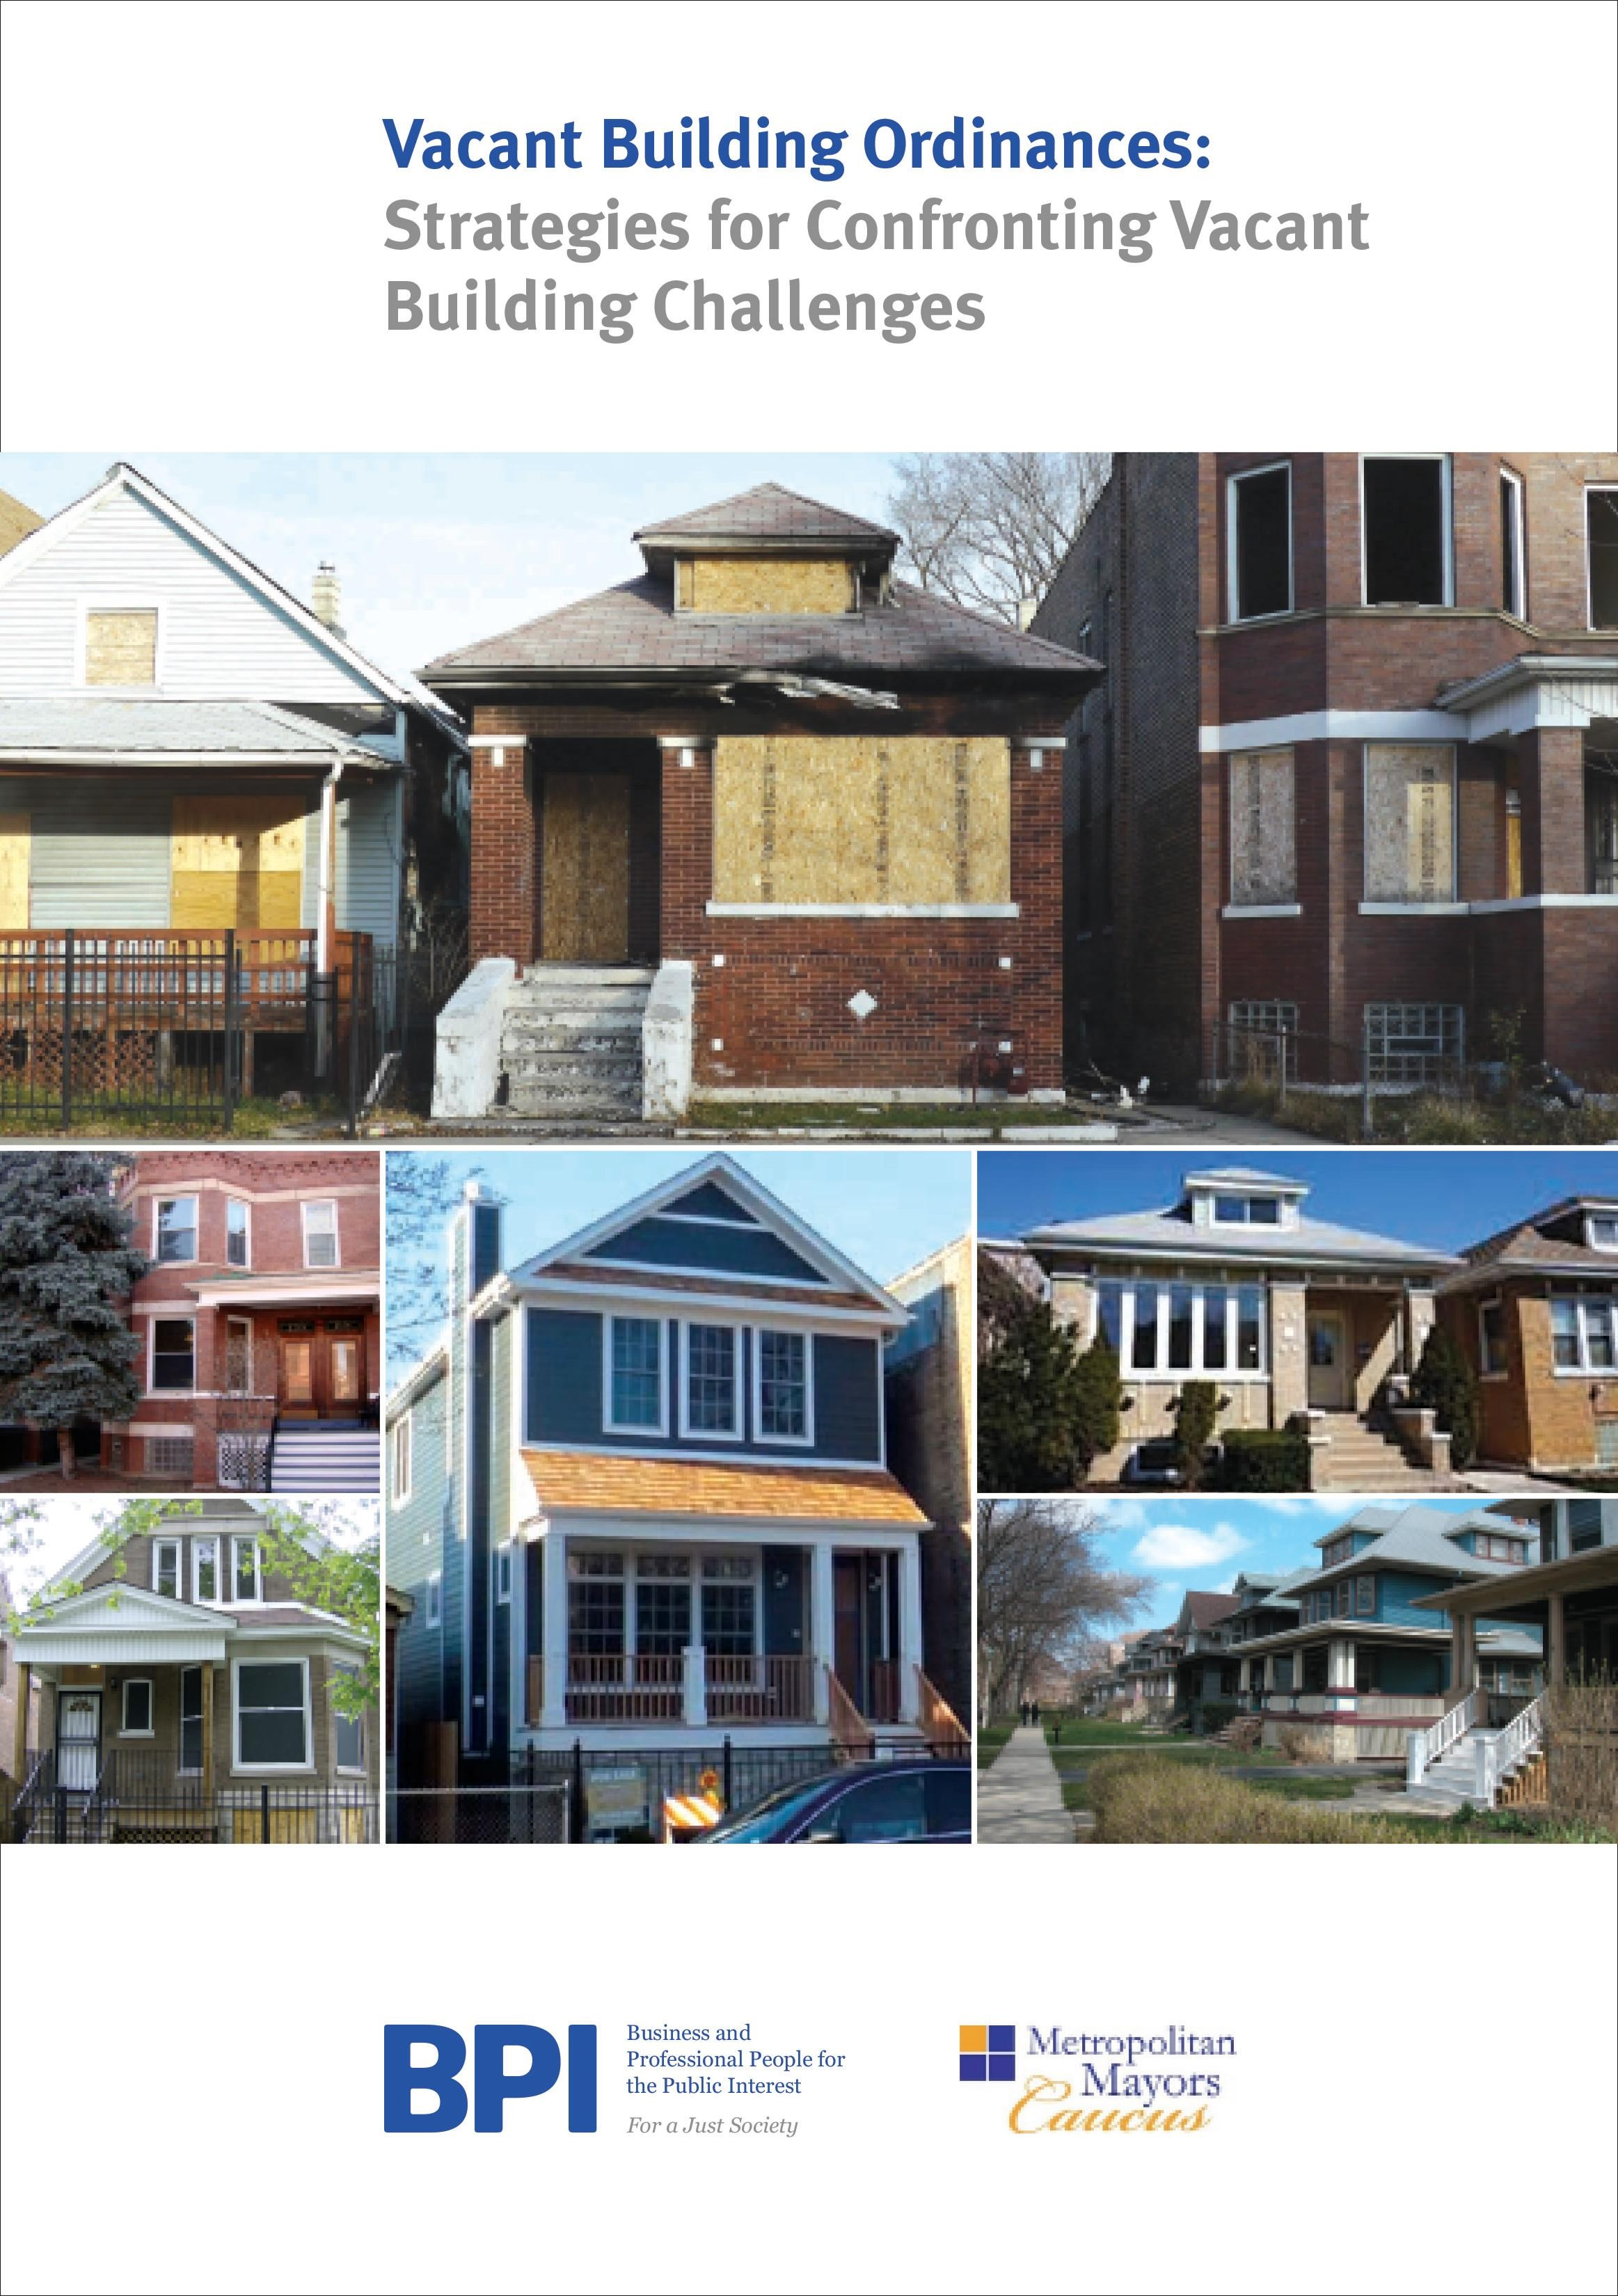 Vacant Building Ordinance Publication Released